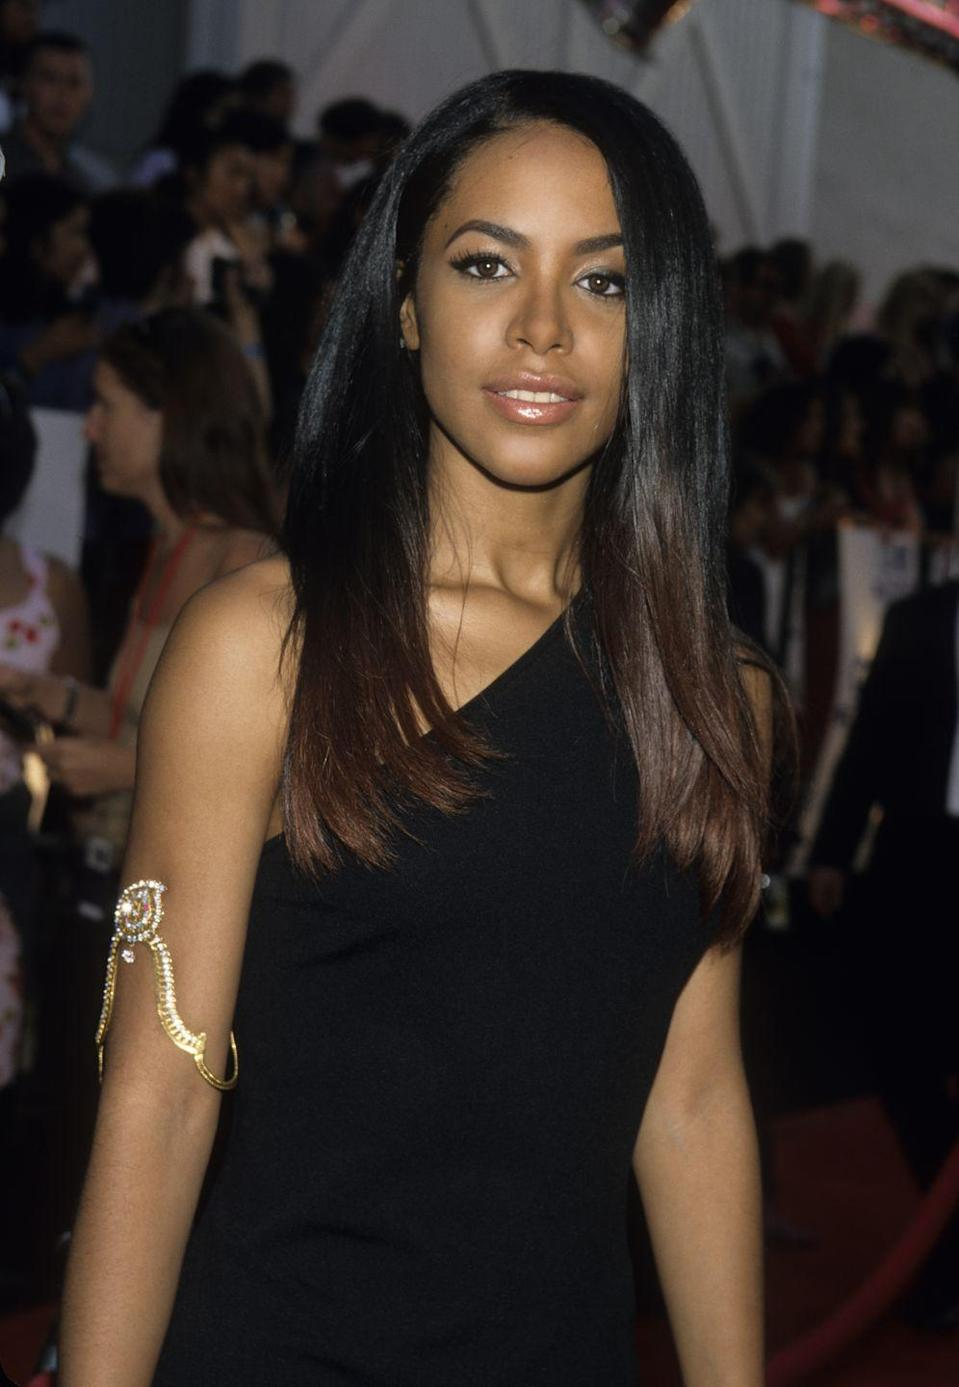 """<p>Despite the big shoulder pads and her amazing voice, the late Aaliyah didn't win <em>Star Search</em> by <a href=""""https://www.youtube.com/watch?v=Wl19QapsUWA"""" rel=""""nofollow noopener"""" target=""""_blank"""" data-ylk=""""slk:belting out """"My Funny Valentine"""" at the age of 10"""" class=""""link rapid-noclick-resp"""">belting out """"My Funny Valentine"""" at the age of 10</a>, but she captured our hearts (and ears) with her debut album only five years later.</p>"""